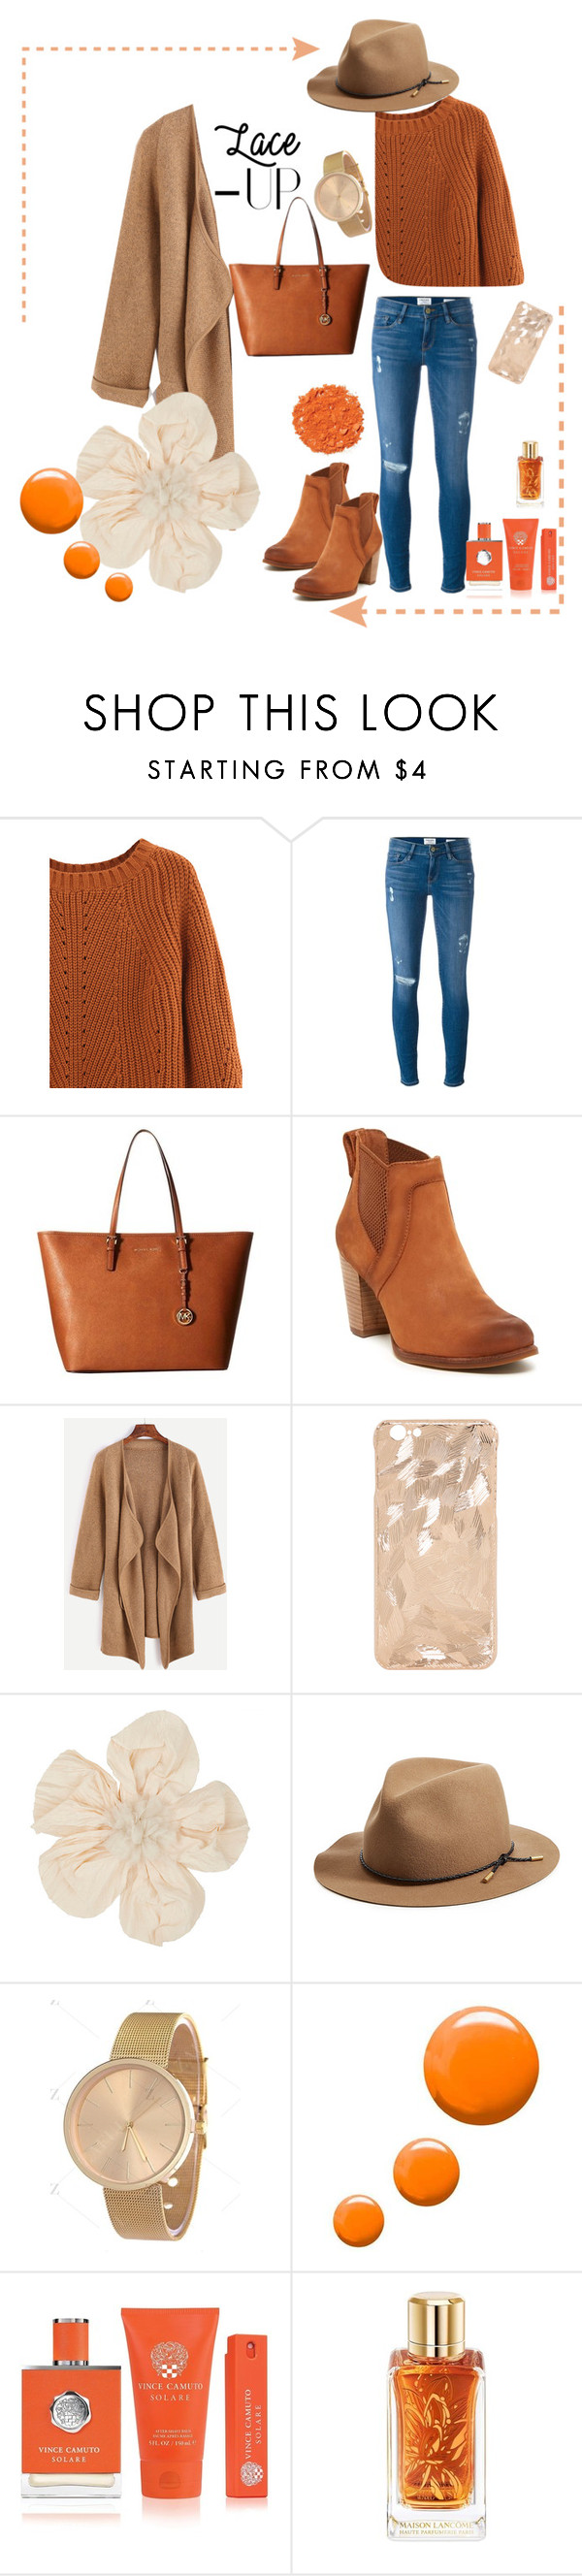 """""""winter look"""" by kataaaa3101 ❤ liked on Polyvore featuring Frame, MICHAEL Michael Kors, UGG, Lanvin, rag & bone, Topshop, Vince Camuto, Illamasqua and Lancôme"""